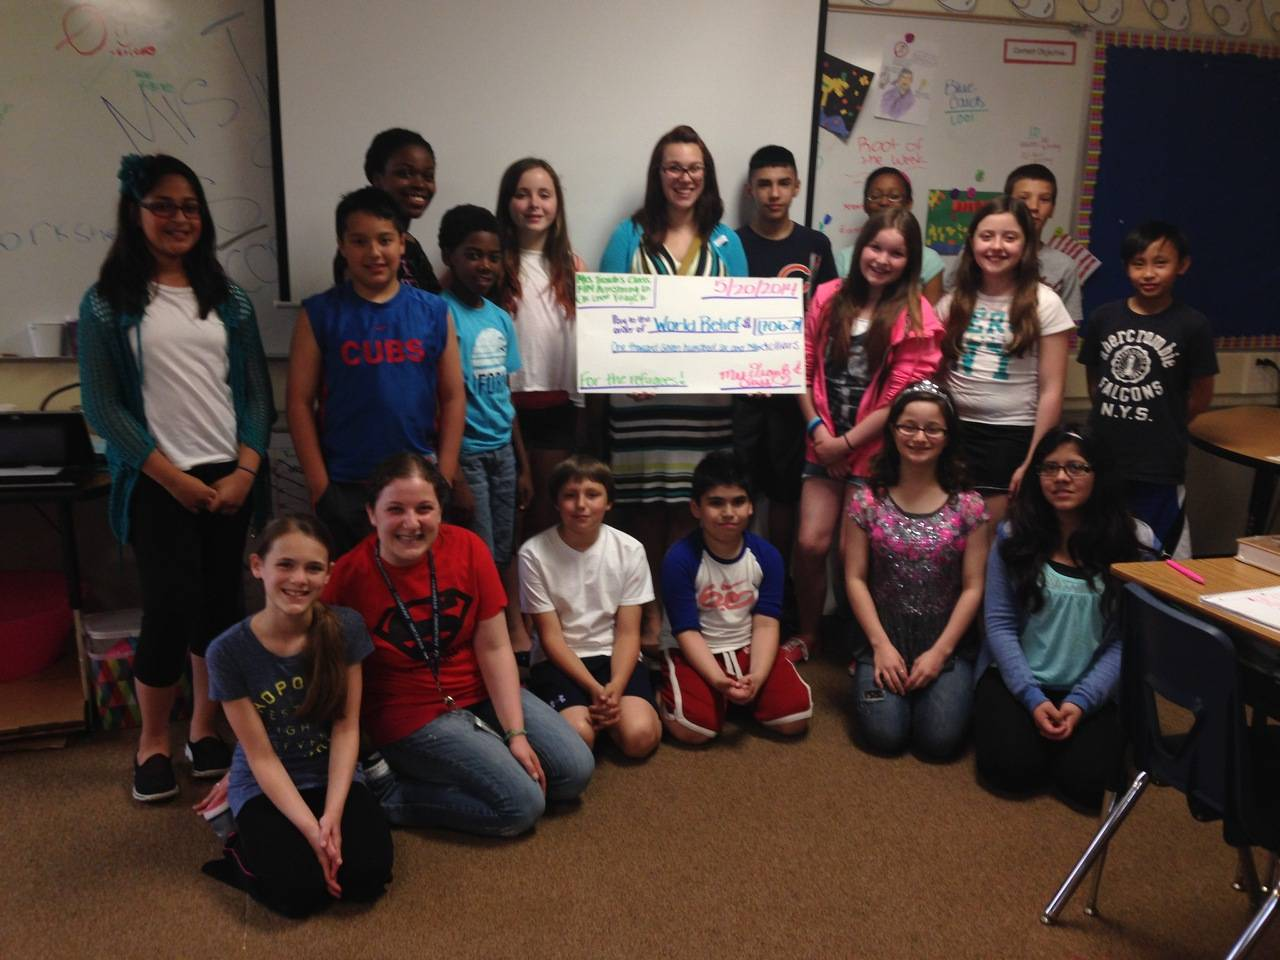 Photo taken at Stevenson School. Mrs. Traub's 5th/6th grade class with World Relief Representative, Maggie.Back row from left: Zara, Ryan, Amina, Isaiah, Kelsey, Maggie of World Relief-Wheaton, Jorge, Genesis, Garrett2nd row standing on the right: Aliya, Natalie, MarkusBottom row from left: Lily, Mrs. Jennifer Traub, Carson, Edwin, Julia, Jacky(Missing: Nithila, Shariq, Giovanni, A.J., Erica)Yasmina Blackburn